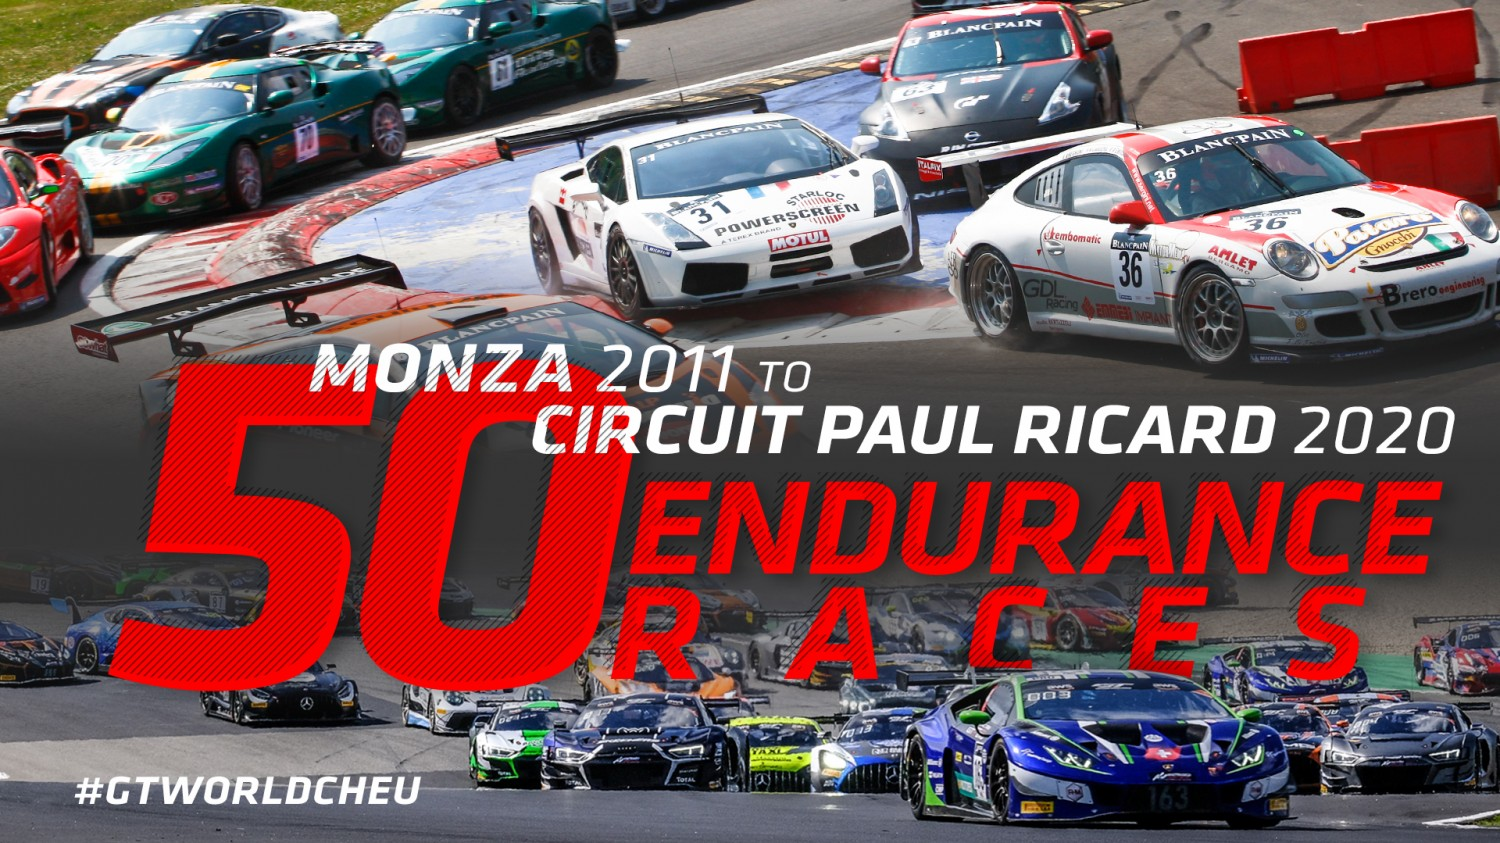 Endurance Cup to celebrate landmark 50th race at Circuit Paul Ricard